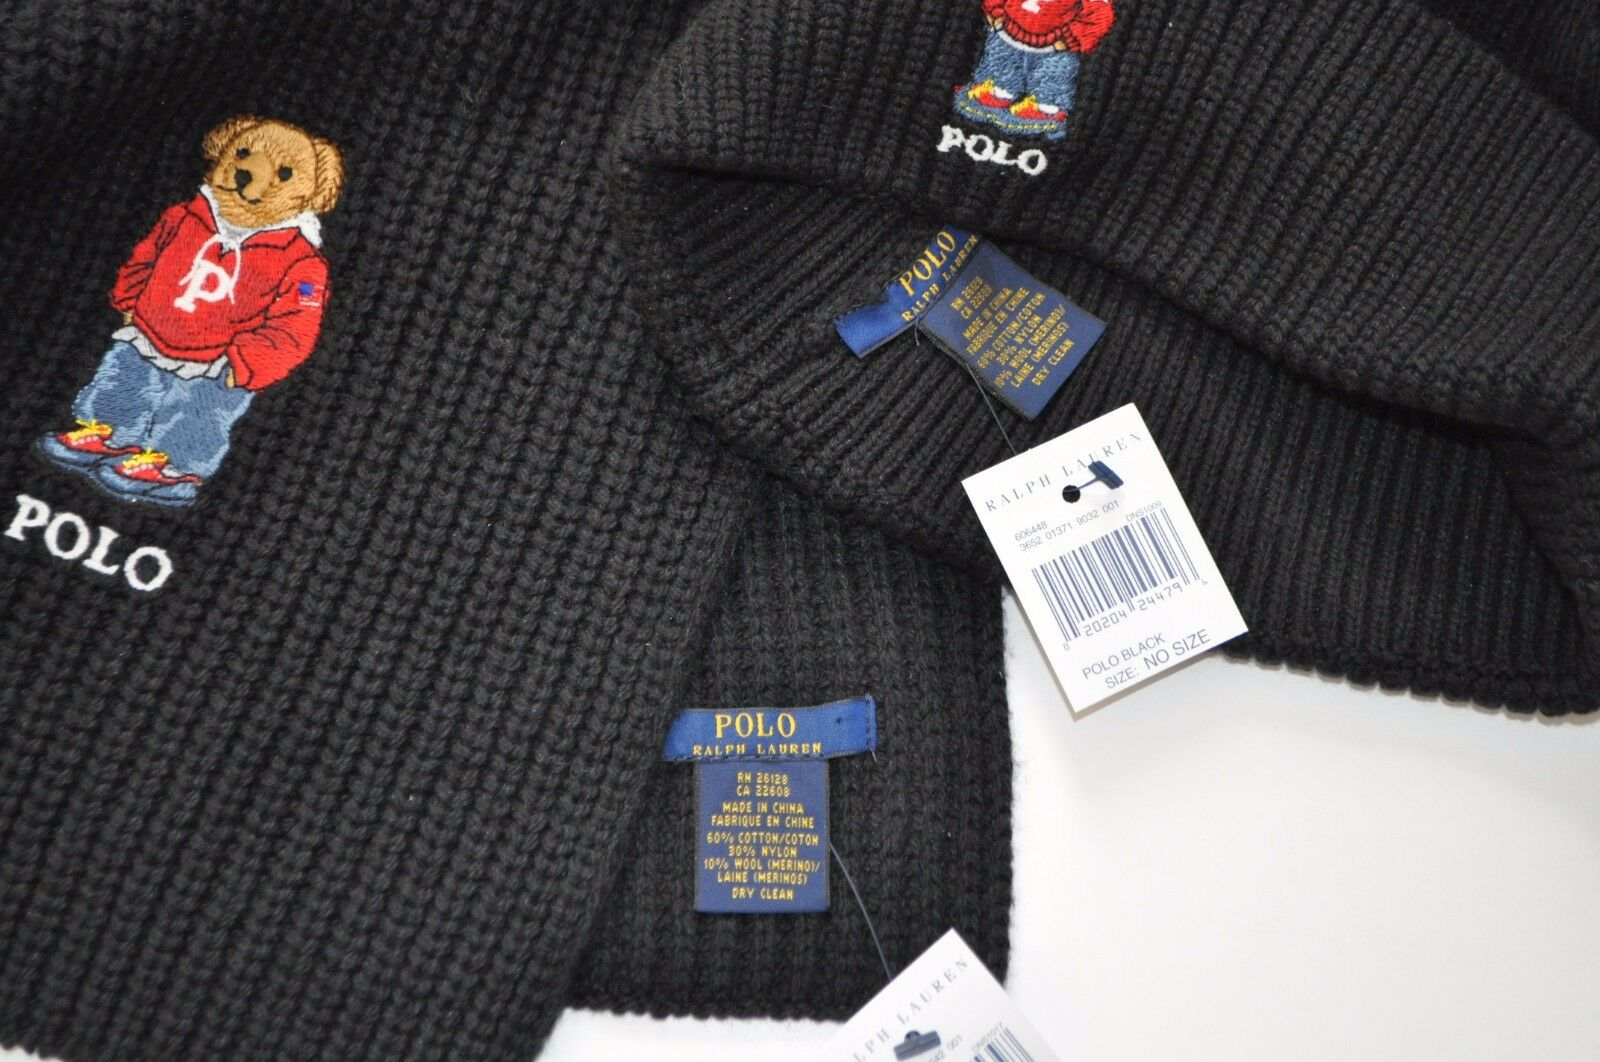 ca211a2dfe6d ... NEW RALPH LAUREN POLO BEAR Winter BEANIE HAT Ski + SCARF Men s Set Ski  HAT GIFT ...